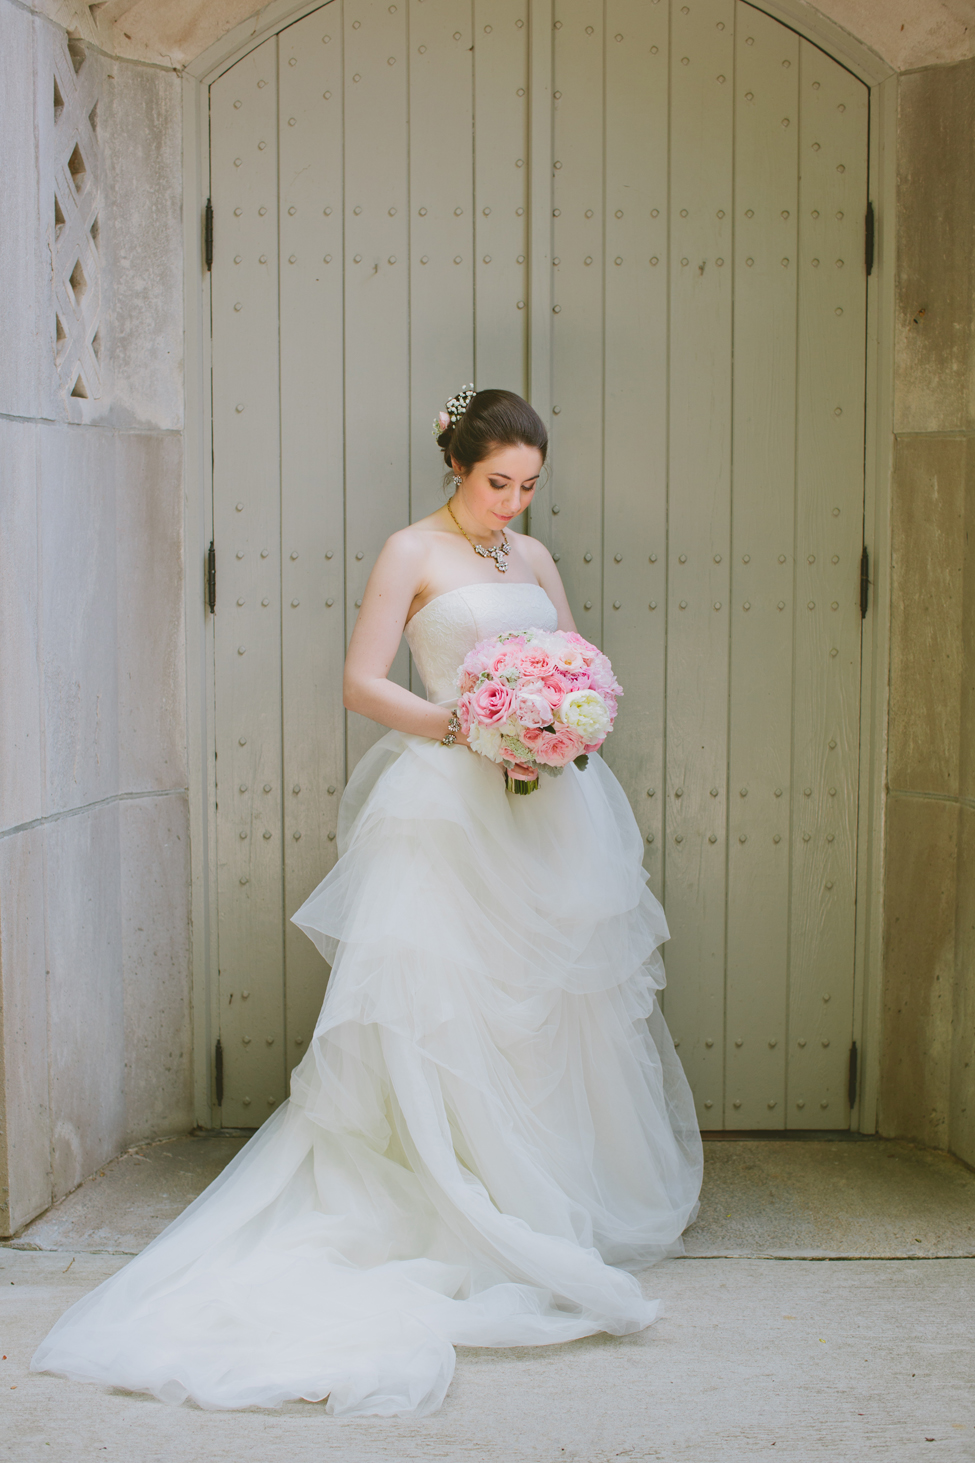 Caitlin-Kyungmin-wedding33.jpg